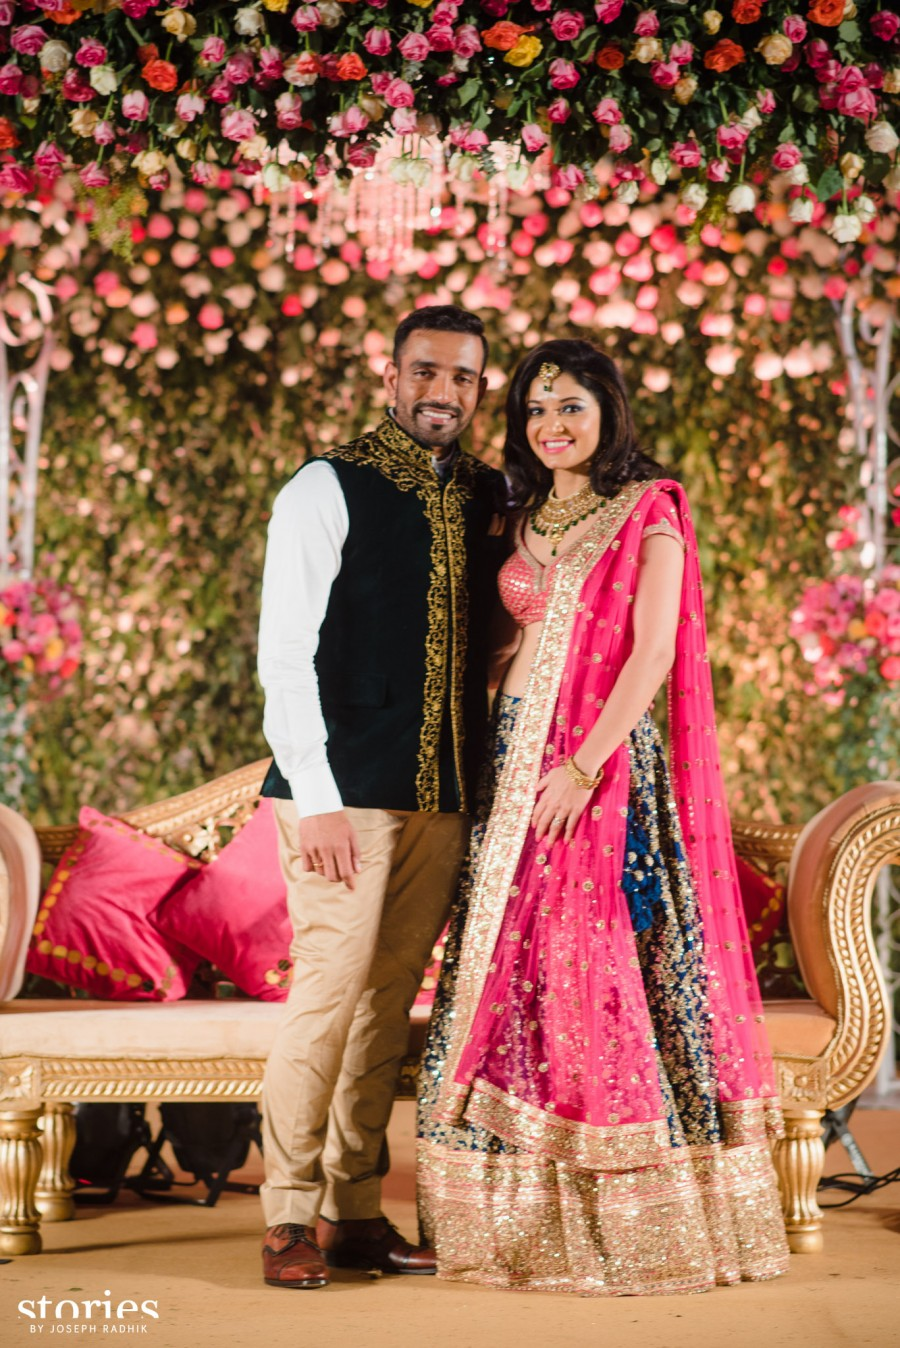 Robin Uthappa,Robin Uthappa and Sheethal Goutham,Sheethal Goutham,Robin Uthappa Wedding Photos,Robin Uthappa Wedding,Robin Uthappa Wedding pics,Robin Uthappa Wedding images,Robin Uthappa Wedding stills,Robin Uthappa Wedding pictures,Robin Uthappa marriage